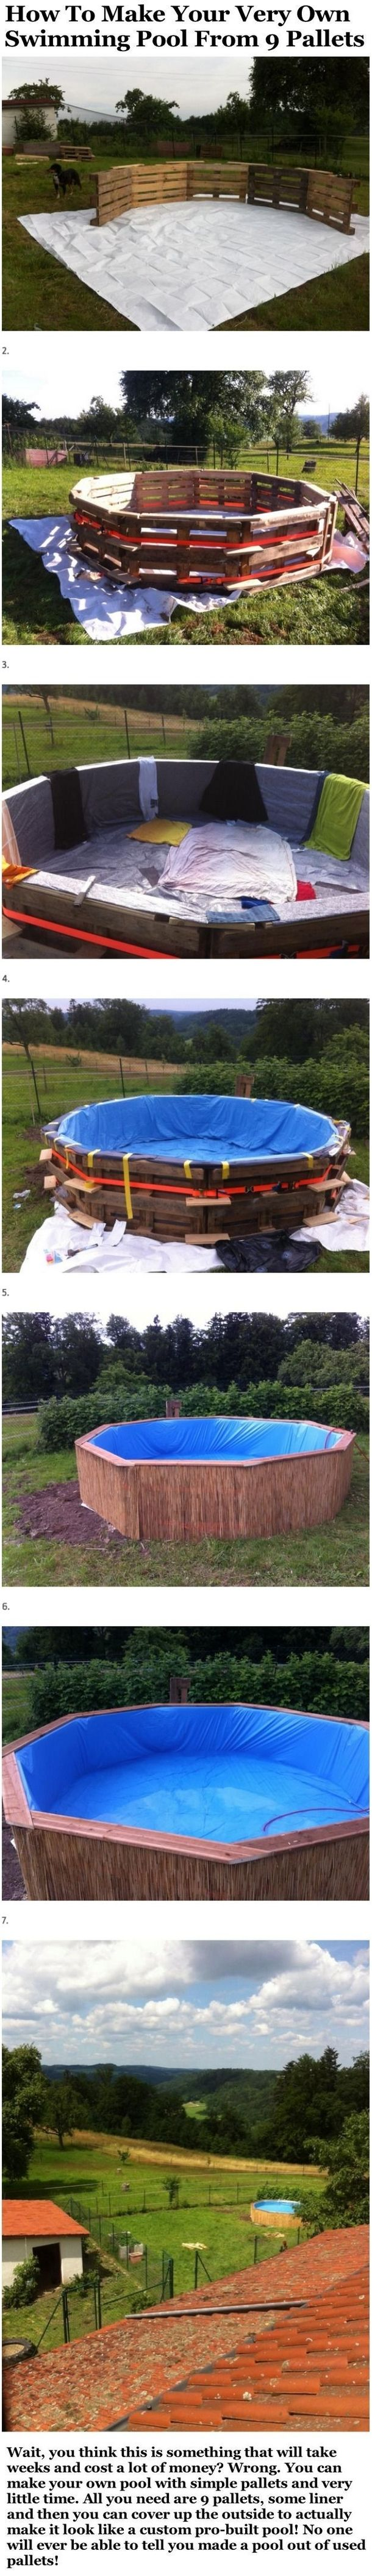 Cheap Backyard Pool Ideas backyard ideas backyard pool ideas horrifying small pools with pic of cool backyard swimming pool designs Learn How To Make A Beautiful Swimming Pool Out Of 10 Pallets